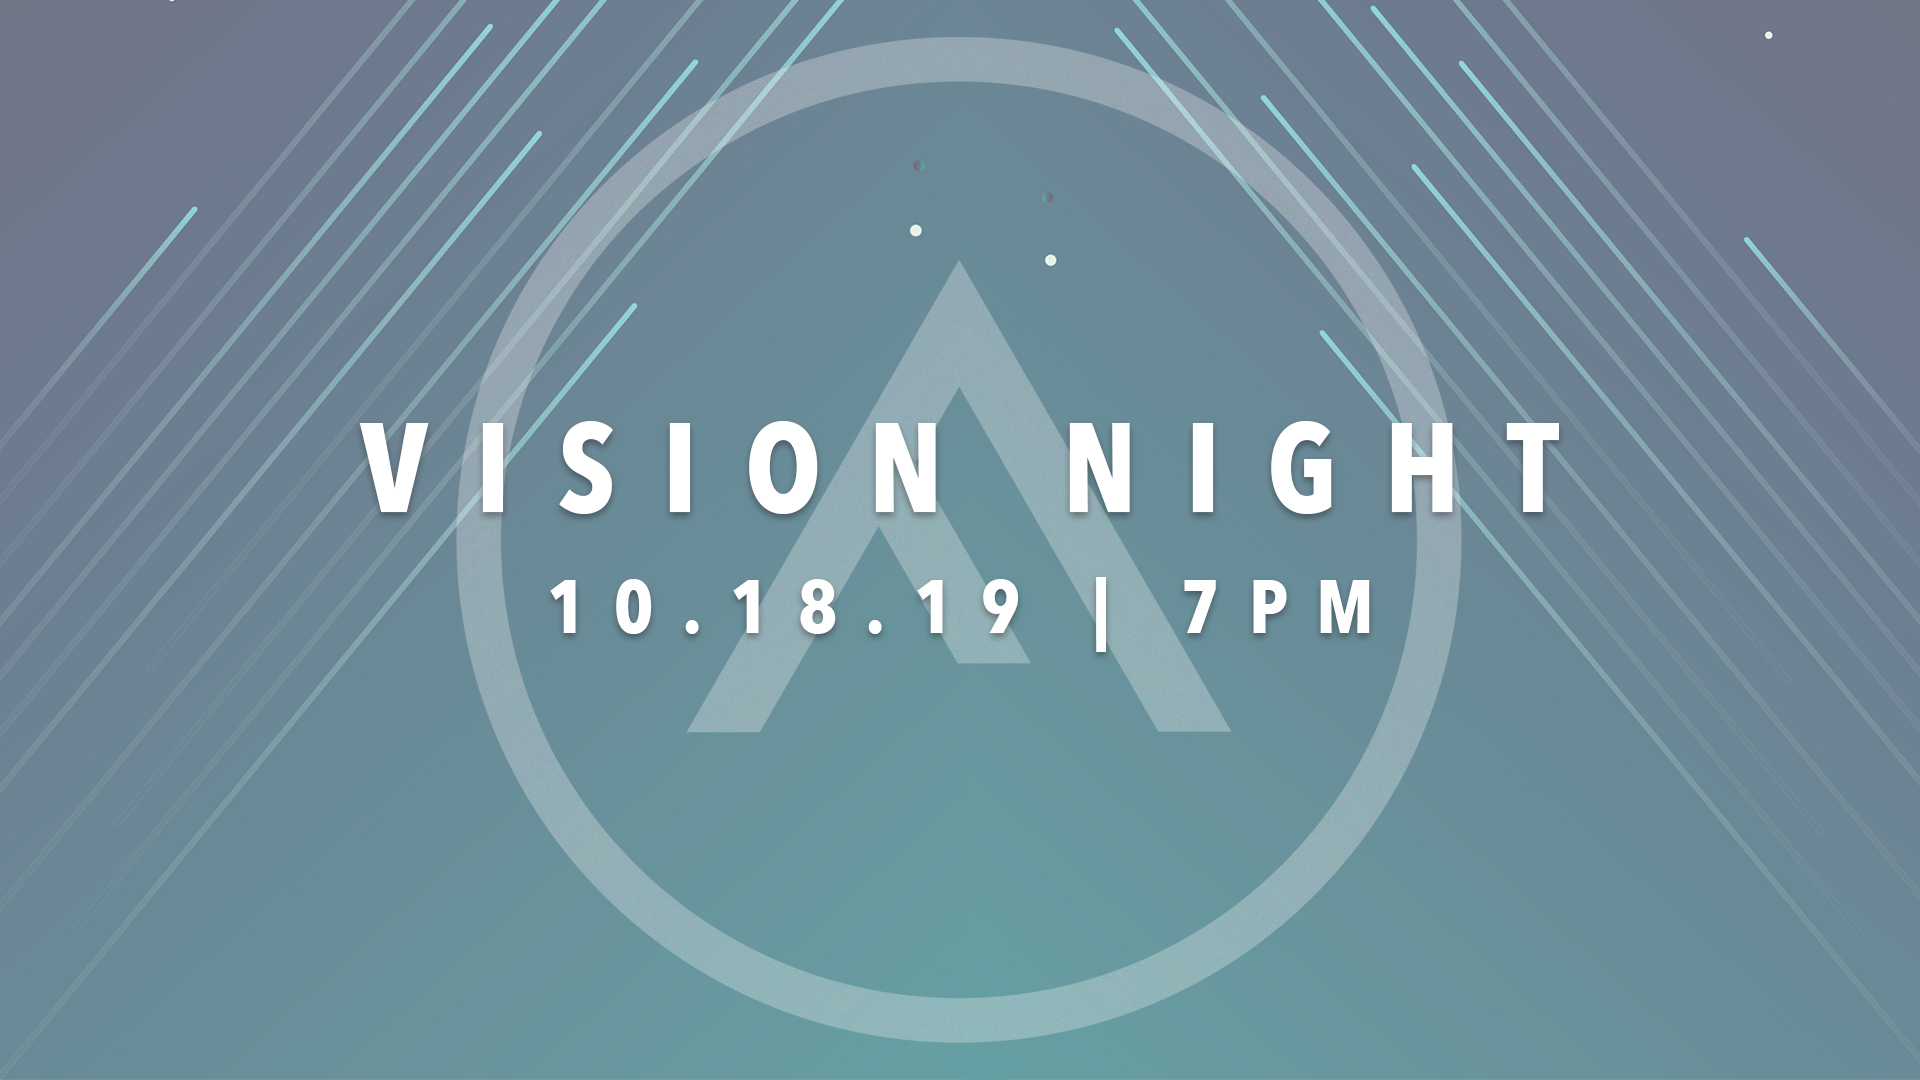 VisionNight2019.png